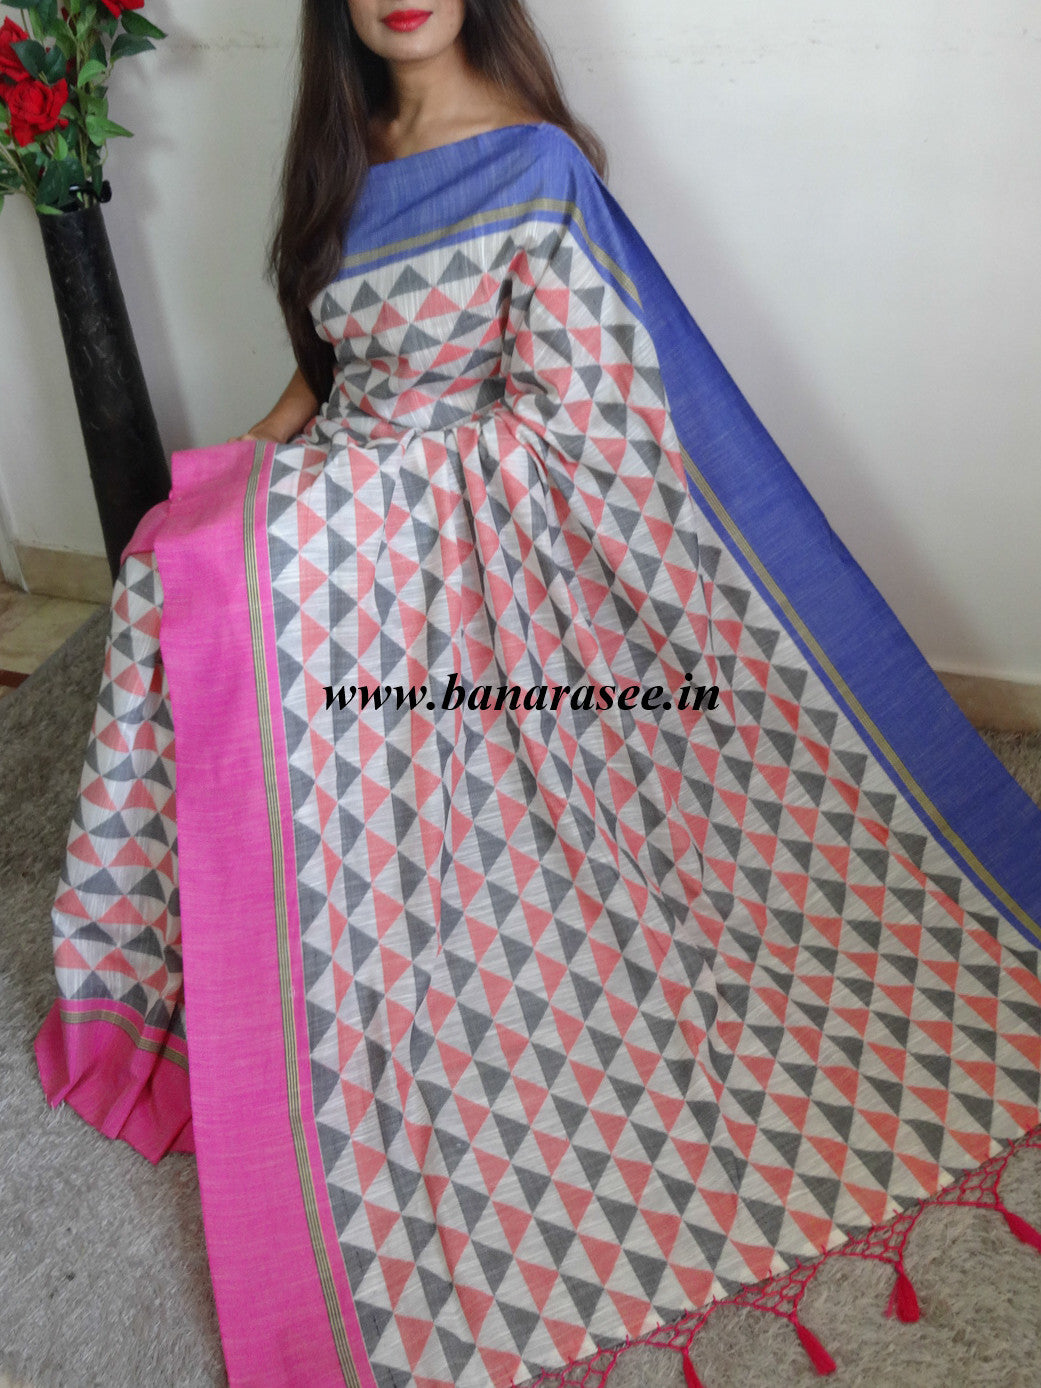 Banarasee Soft Cotton Sari With Woven Triangle Motifs Ganga Jamuna Border &  Pink Blouse-Beige